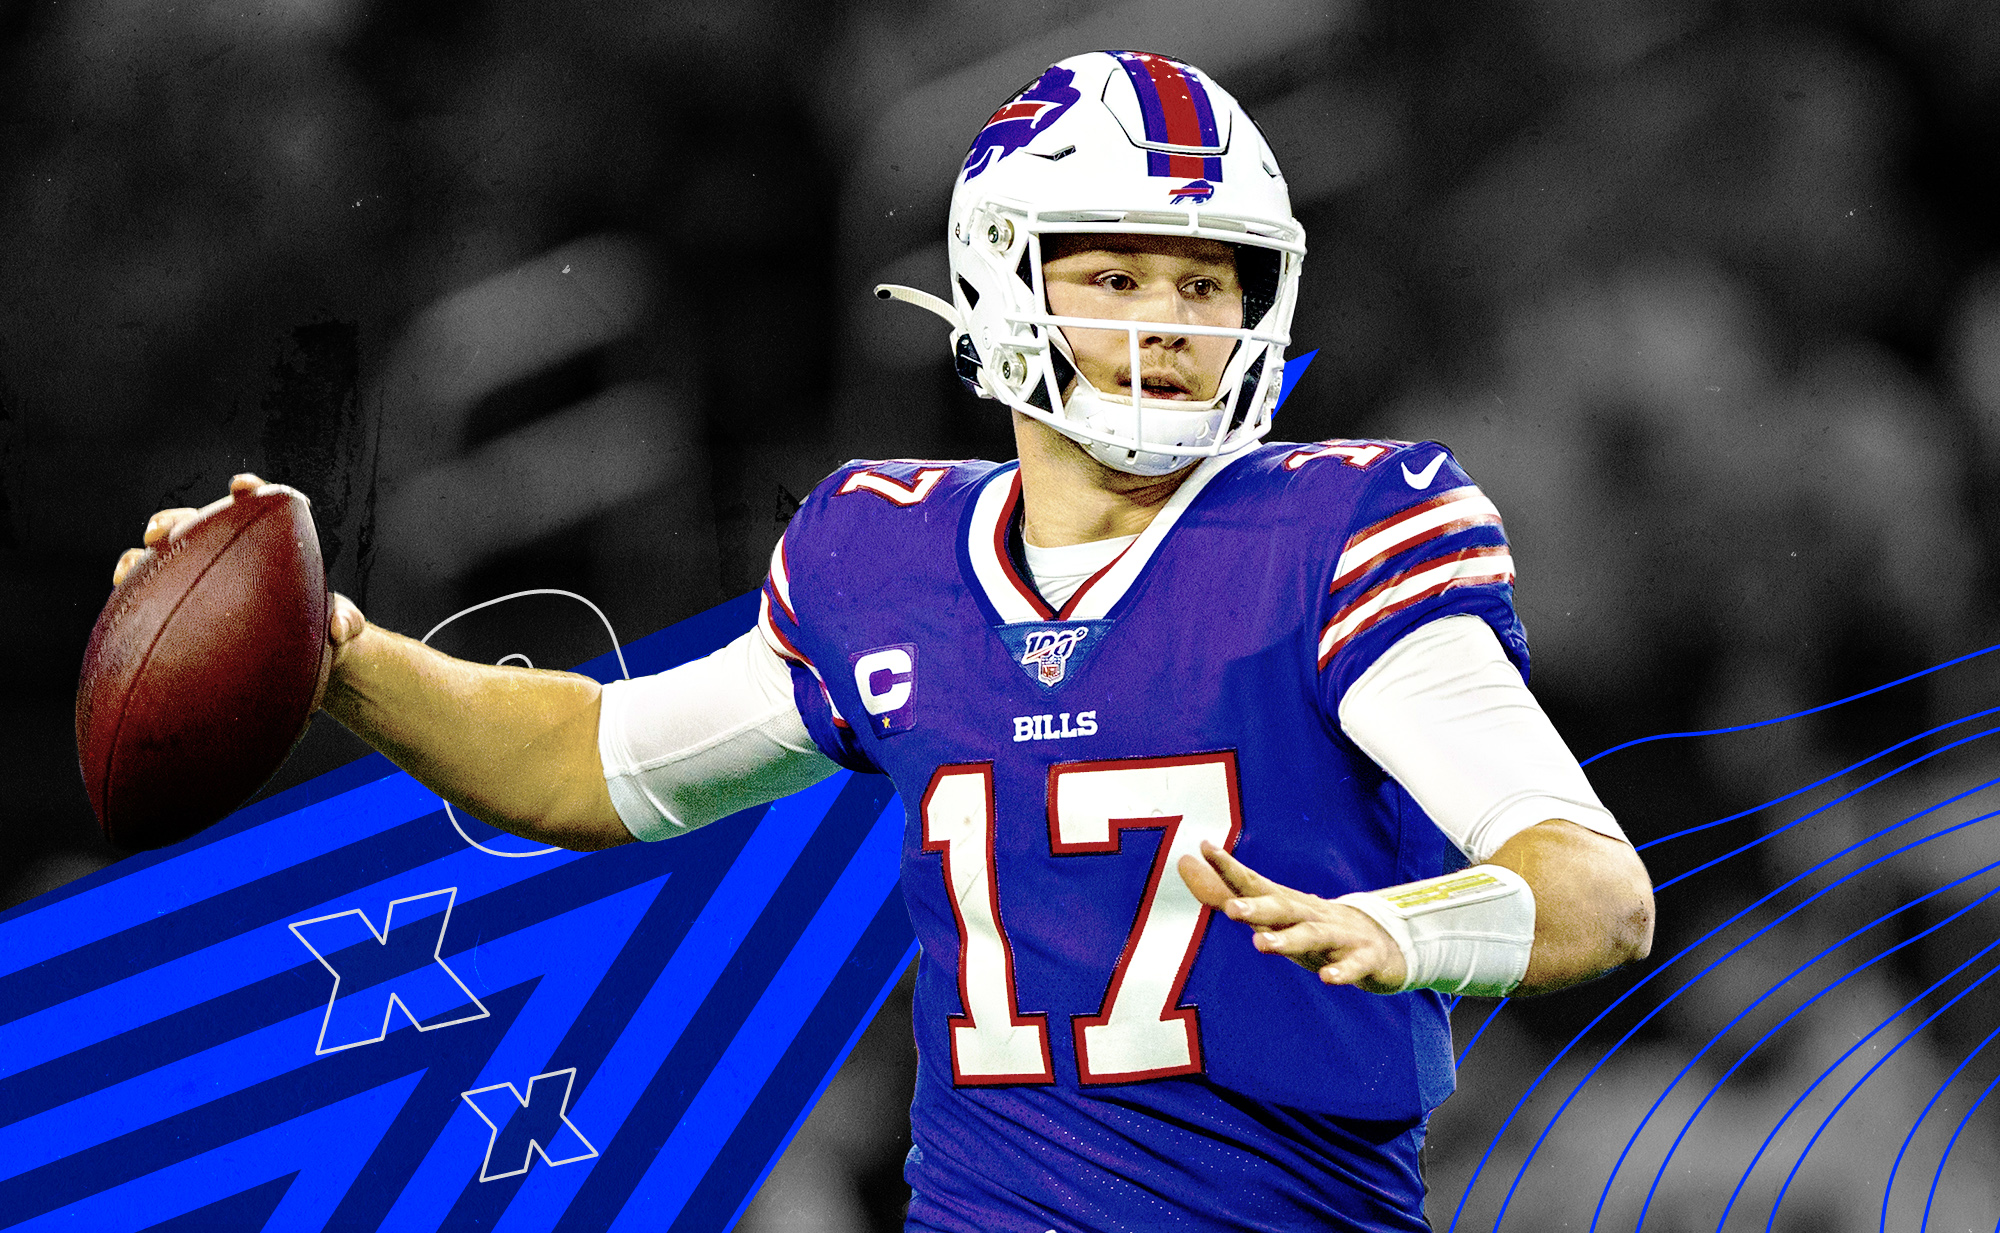 Bills QB Josh Allen has the football in his right hand and readies to throw it, with blue and white X's and O's in the background